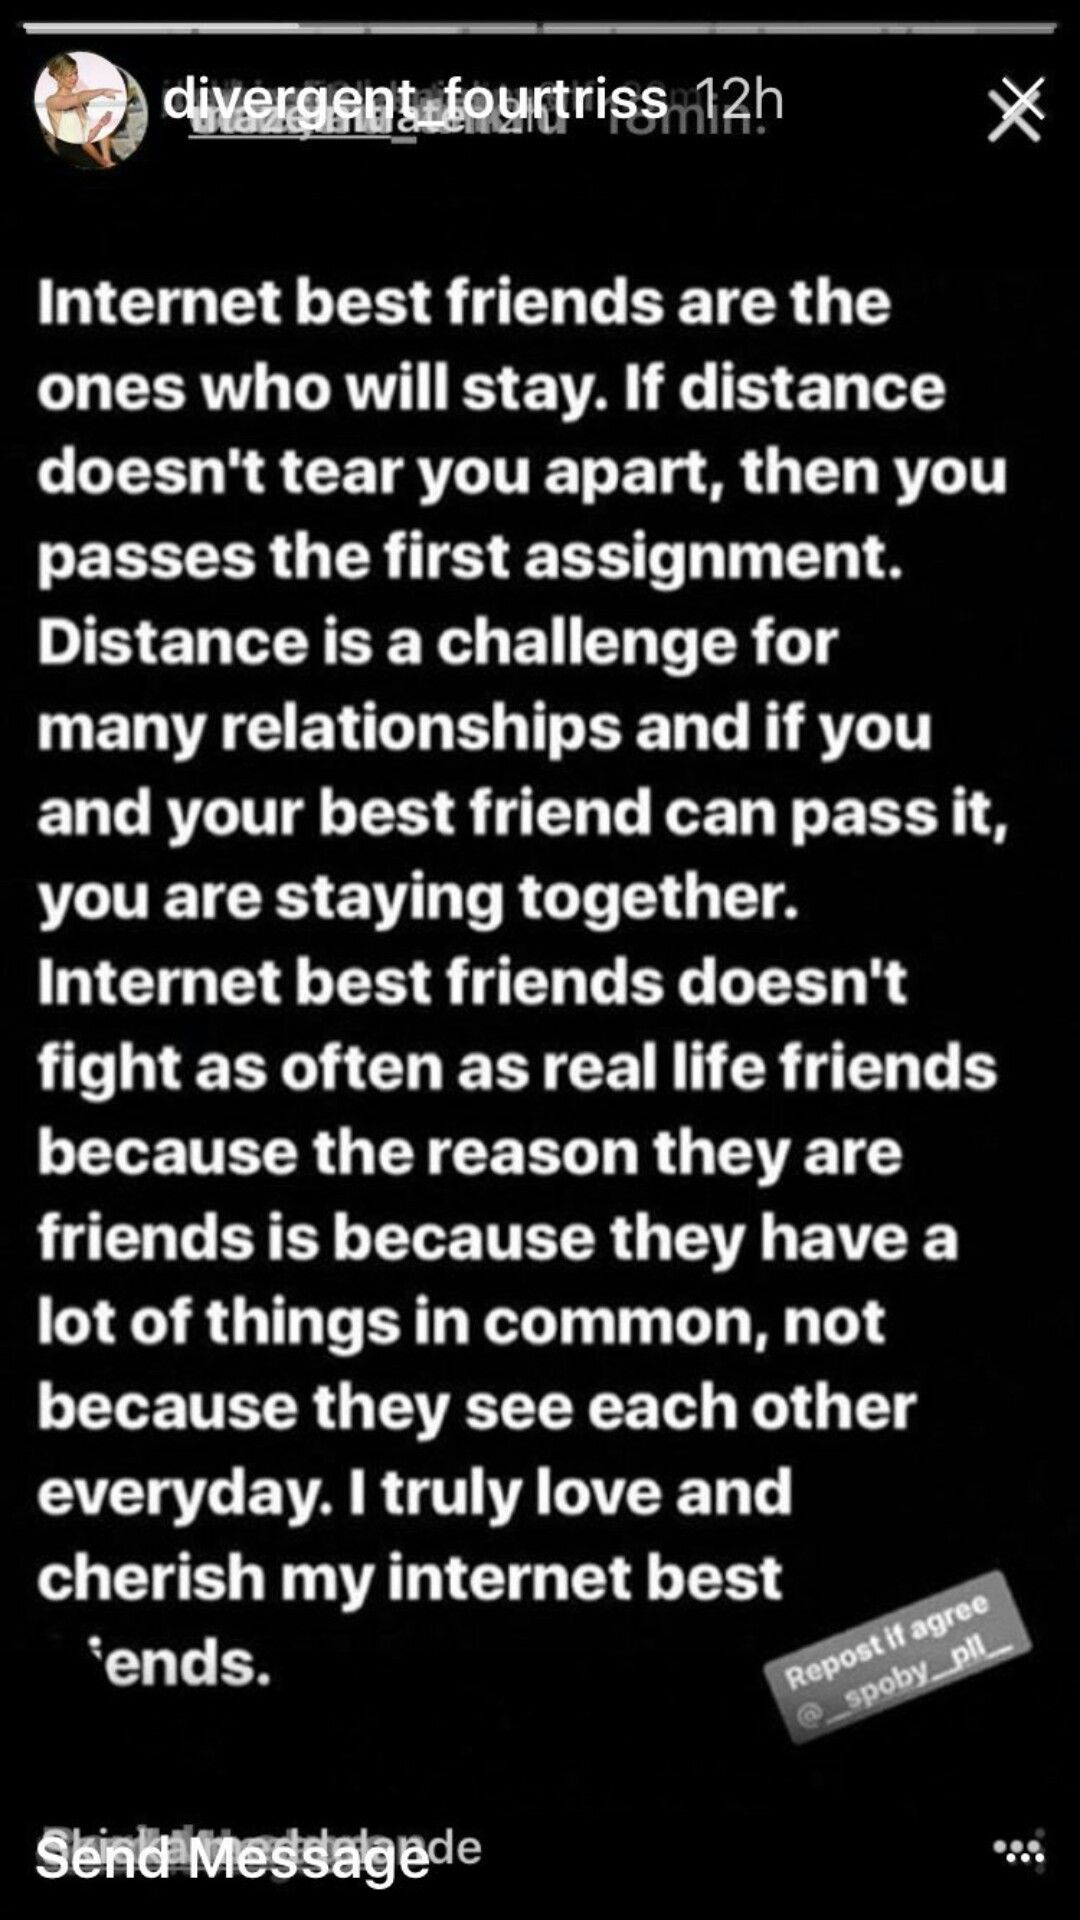 Top Guys Internet Friend Life Coach Quotes Pin By Luly On Internet Friends Pinterest Internet Friends Friends Quotes Wallpaper Friends Quotes inspiration Best Friends Quotes